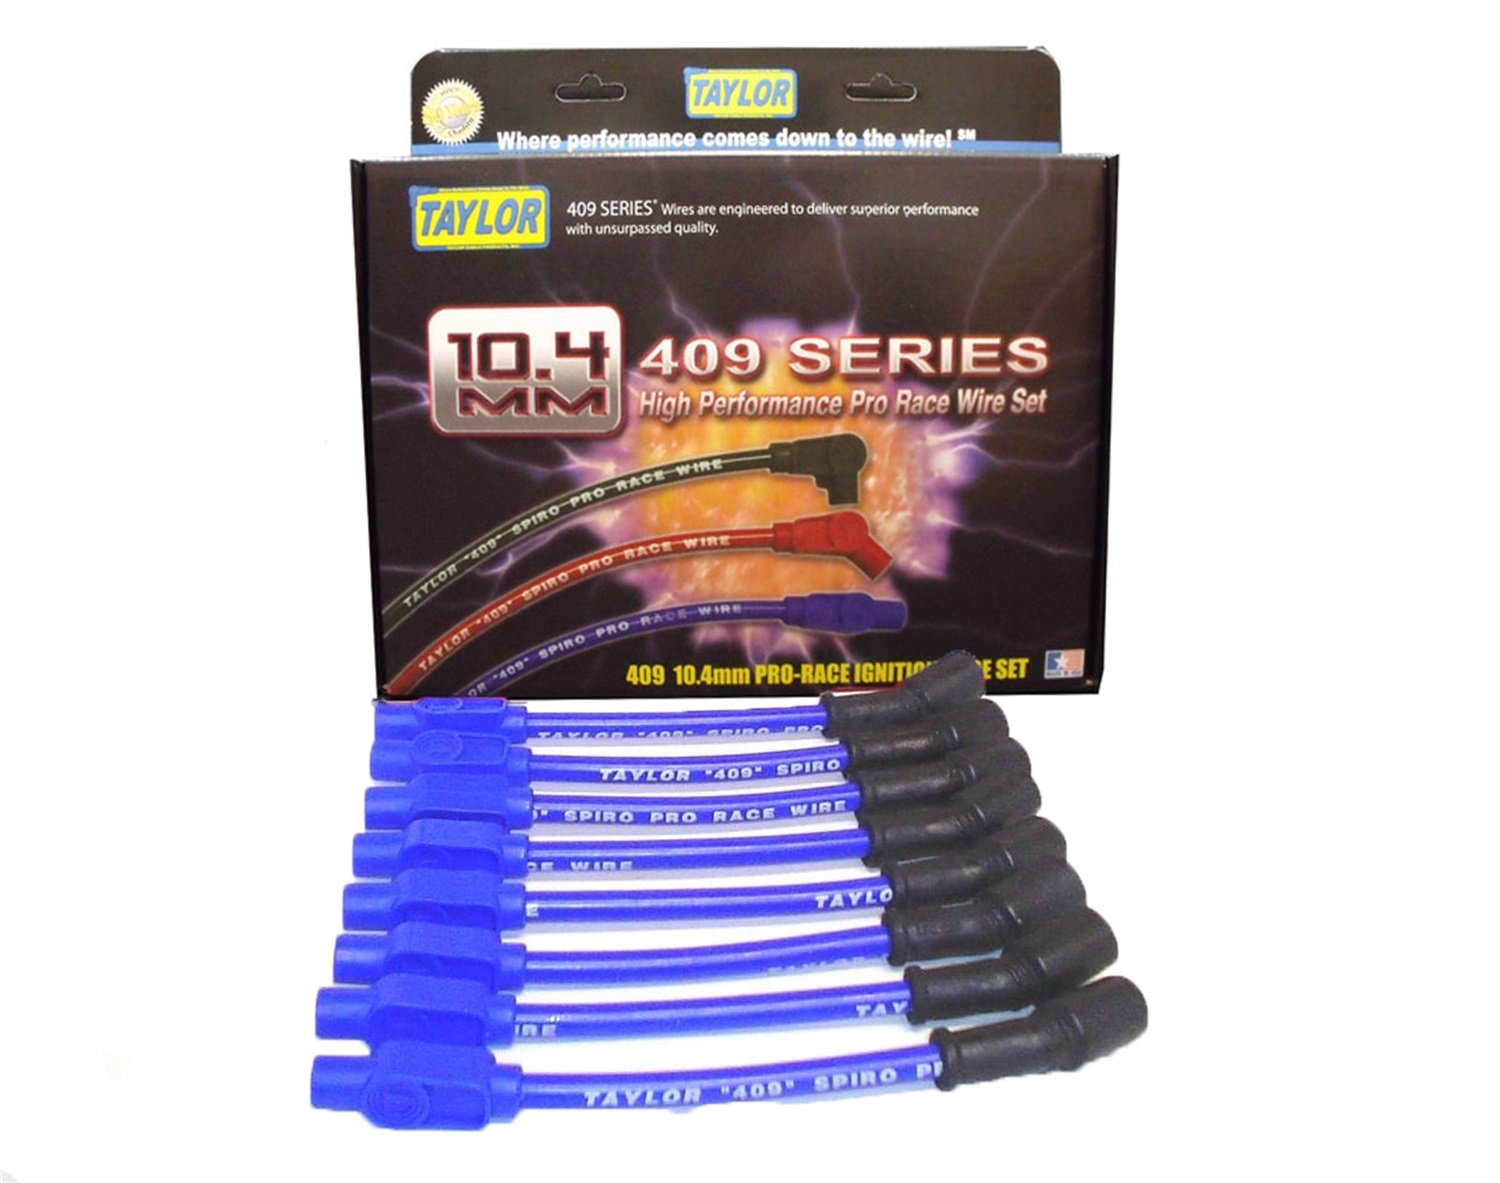 Taylor Cable 79603 Pro Race Ignition Wire Set